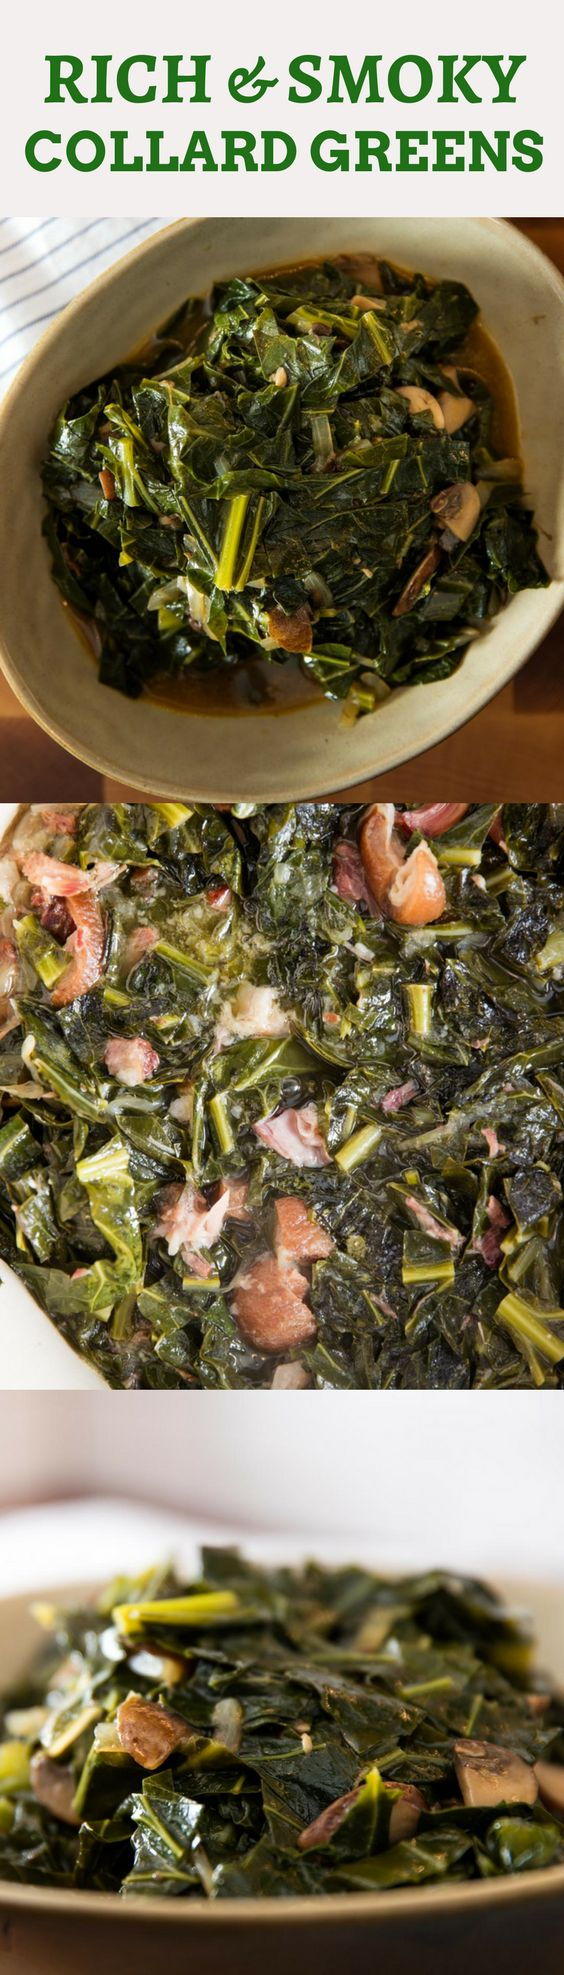 Two recipes we're sharing that are both delicious! The first is a pretty traditional pot of collards stewed with ham hocks, hewing closely to classic recipes. The second definitely is not. It's a vegan version that I created to capture those same smoky, meaty flavors, minus the meat—hopefully, its nontraditional approach won't inspire a peanut-sized reaction.